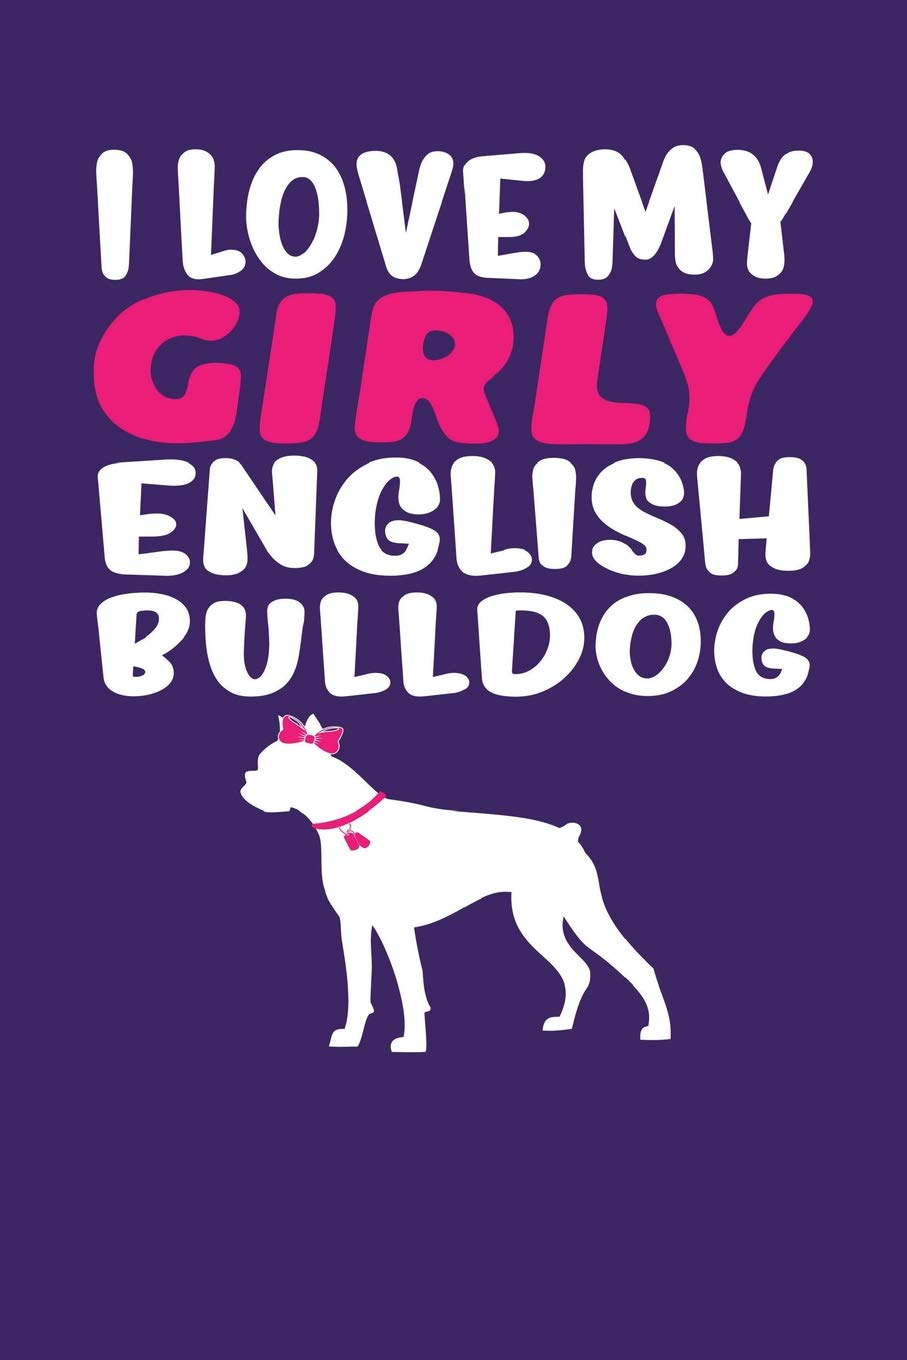 I Love My Girly English Bulldog: Dark Purple, Pink & White Design, Blank College Ruled Line Paper Journal Notebook for Dog Moms and Their Families. ... Book: Journal Diary For Writing and Notes) PDF